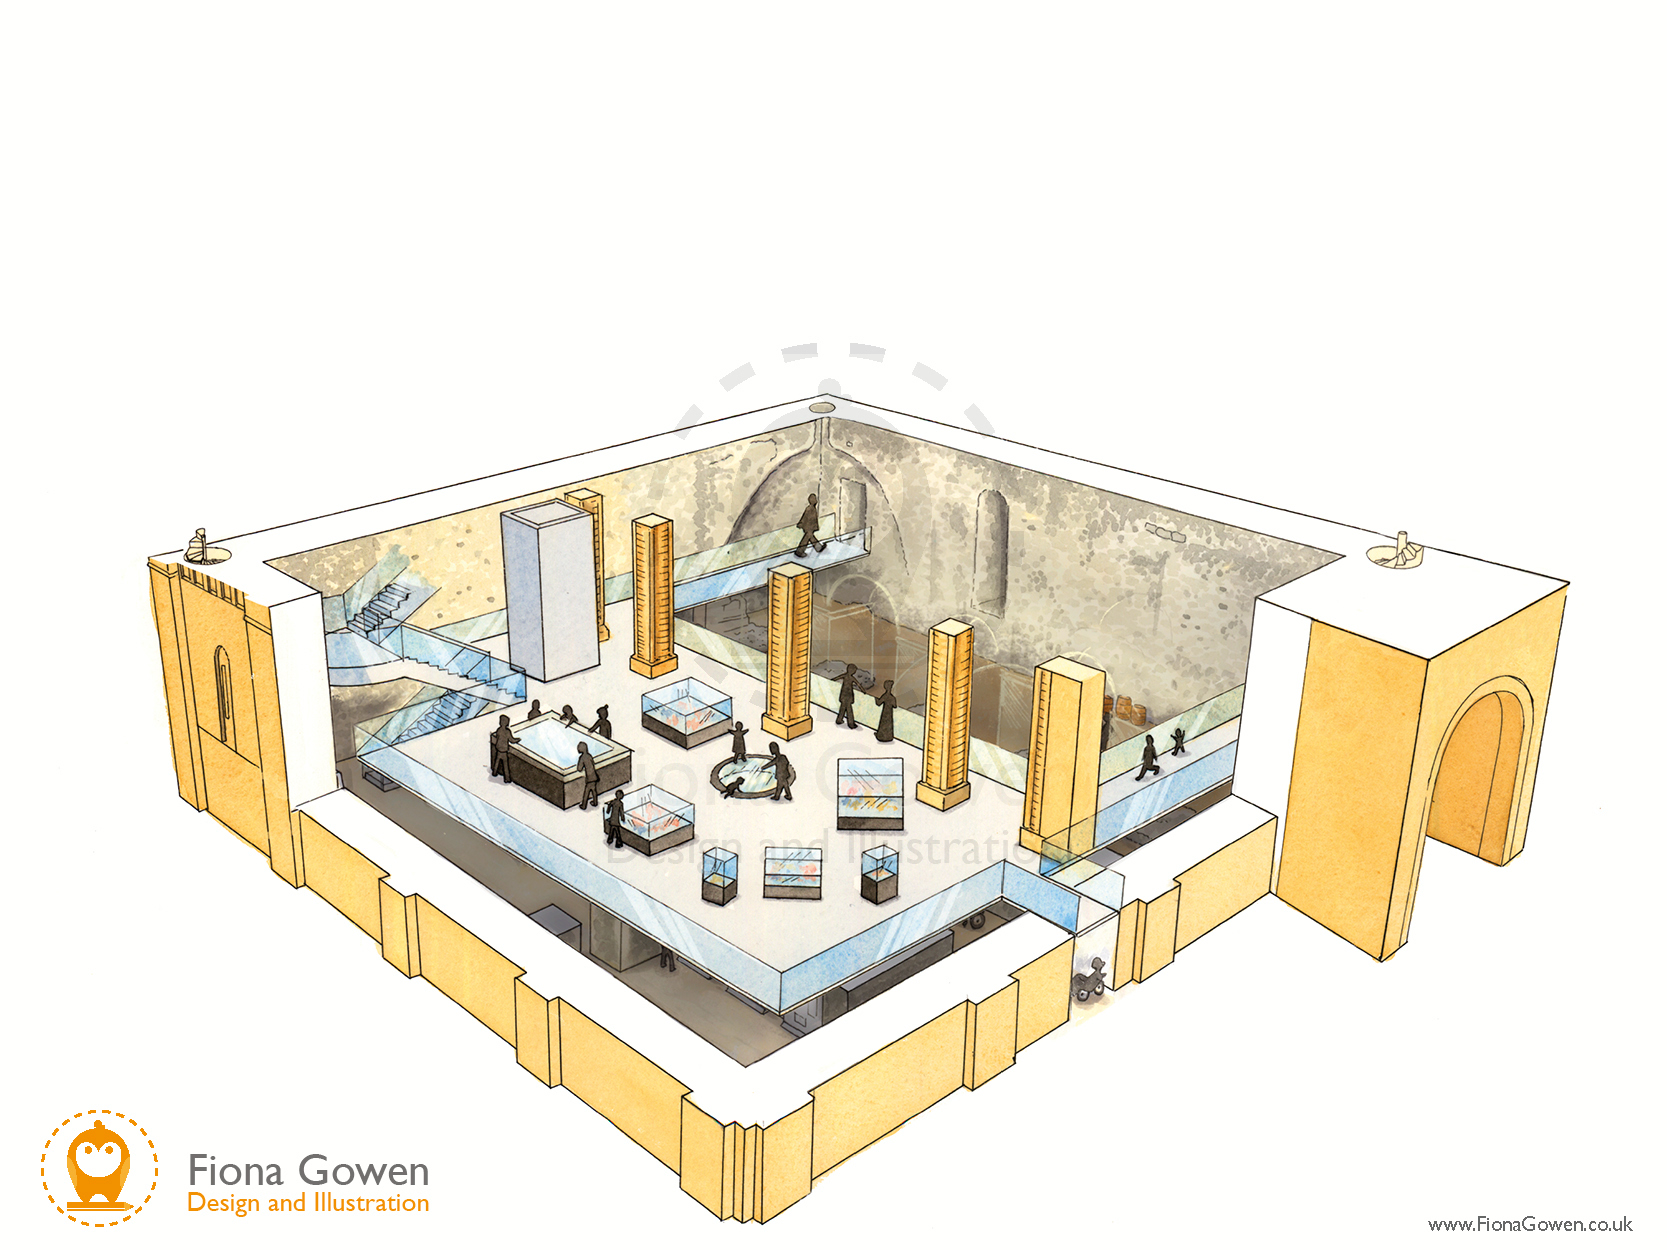 An artist's impression cut-through illustration showing the first floor of the proposed Norwich Castle Keep redevelopment project. Showing visitors looking at displays.